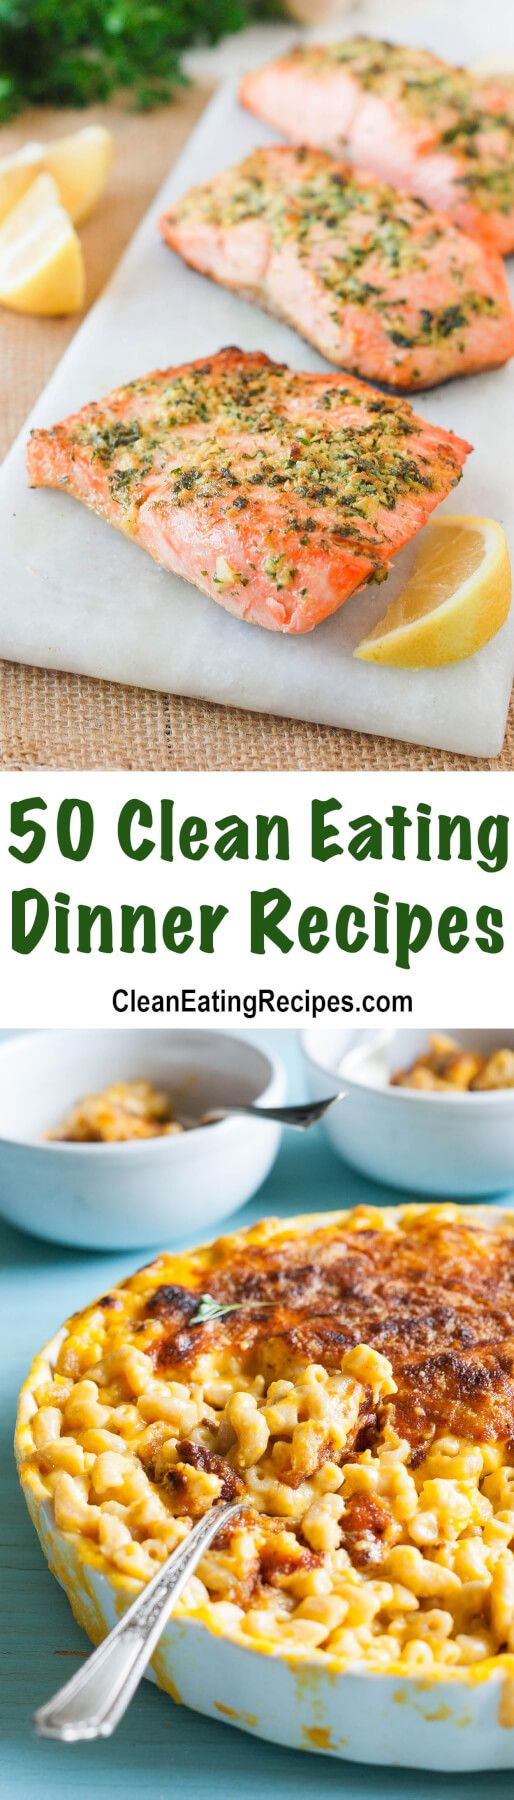 I don't know about you, but I am always on the look out for good recipes that I can make for dinner. At my house, cooking is all about dinner – that's really the only meal I ever spend much time cooking for. That's why I made a post with the 50 best clean eating …